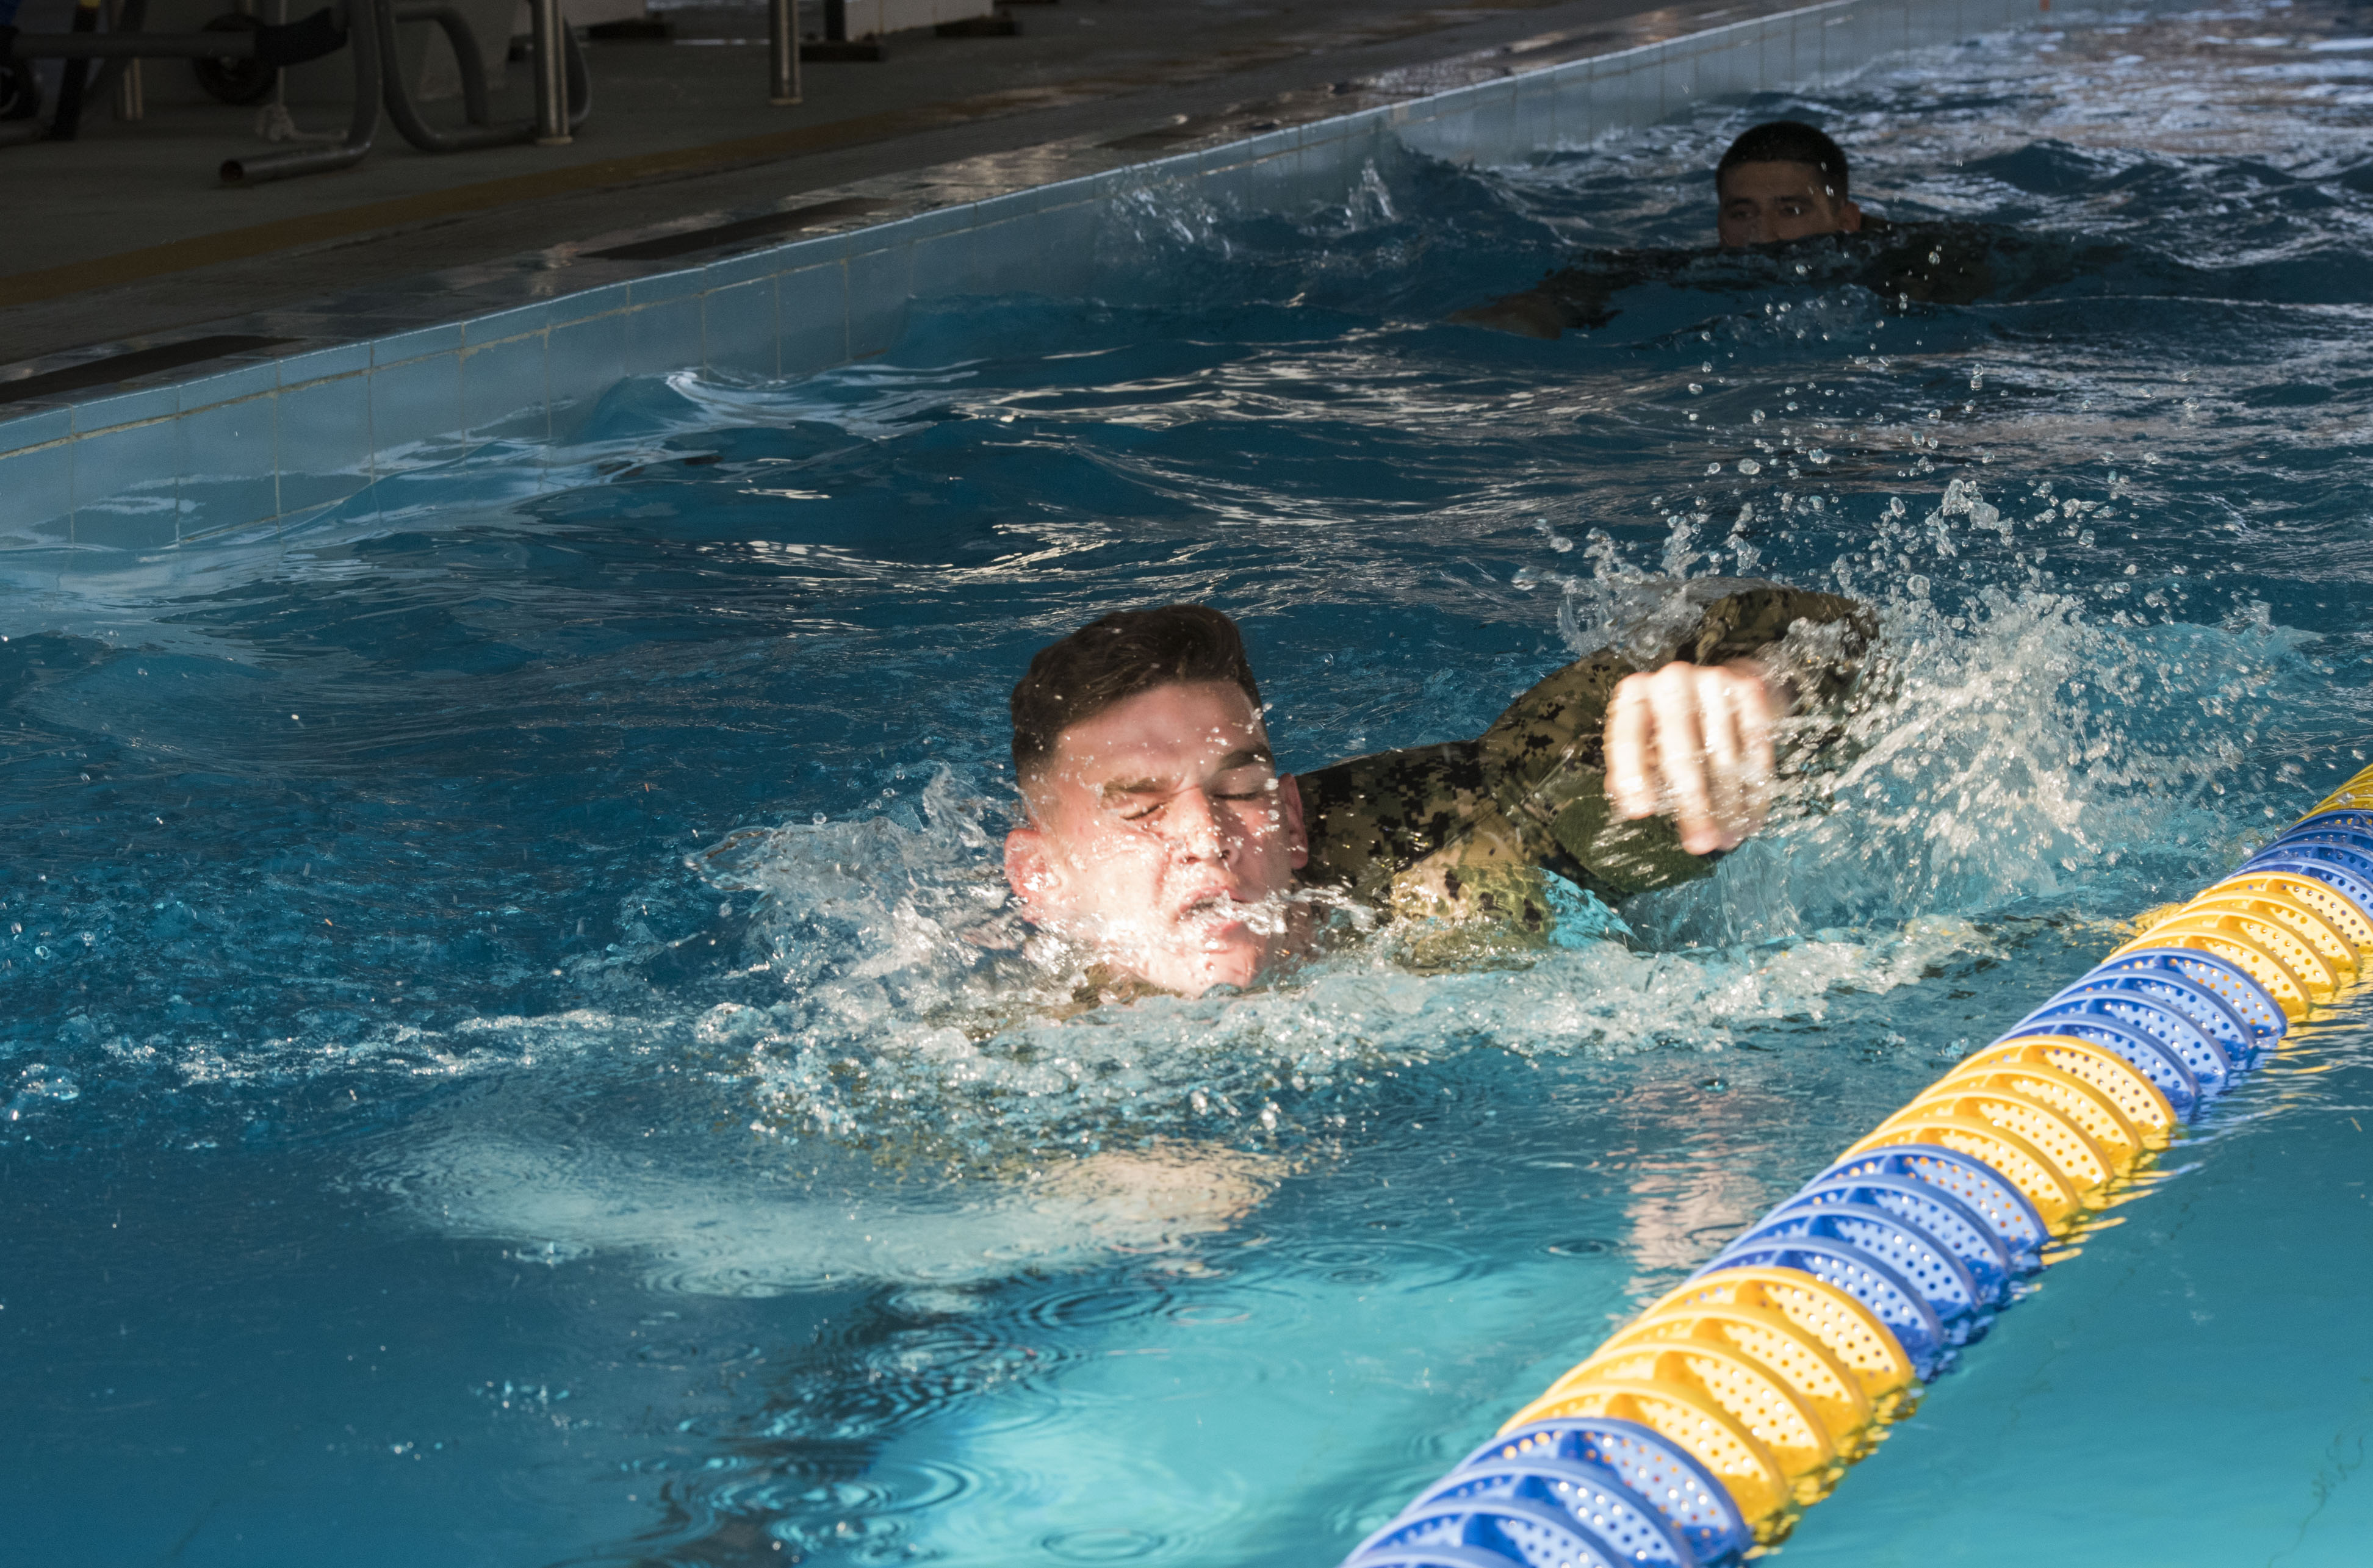 U.S. service members assigned to Combined Joint Task Force-Horn of Africa complete a swim test in uniform as part of the competition to earn the German Armed Forces Proficiency Badge (GAFPB), a decoration of the Armed Forces of the Federal Republic of Germany, at Camp Lemonnier, Djibouti, Nov. 28, 2017. Competitors must complete a physical fitness test, uniformed swim, weapons qualification, ruck march, first aid course and chemical warfare course to be awarded the GAFPB, one of the few foreign allied military awards that U.S. service members are authorized to wear. (U.S. Air National Guard photo by Staff Sgt. Allyson L. Manners)